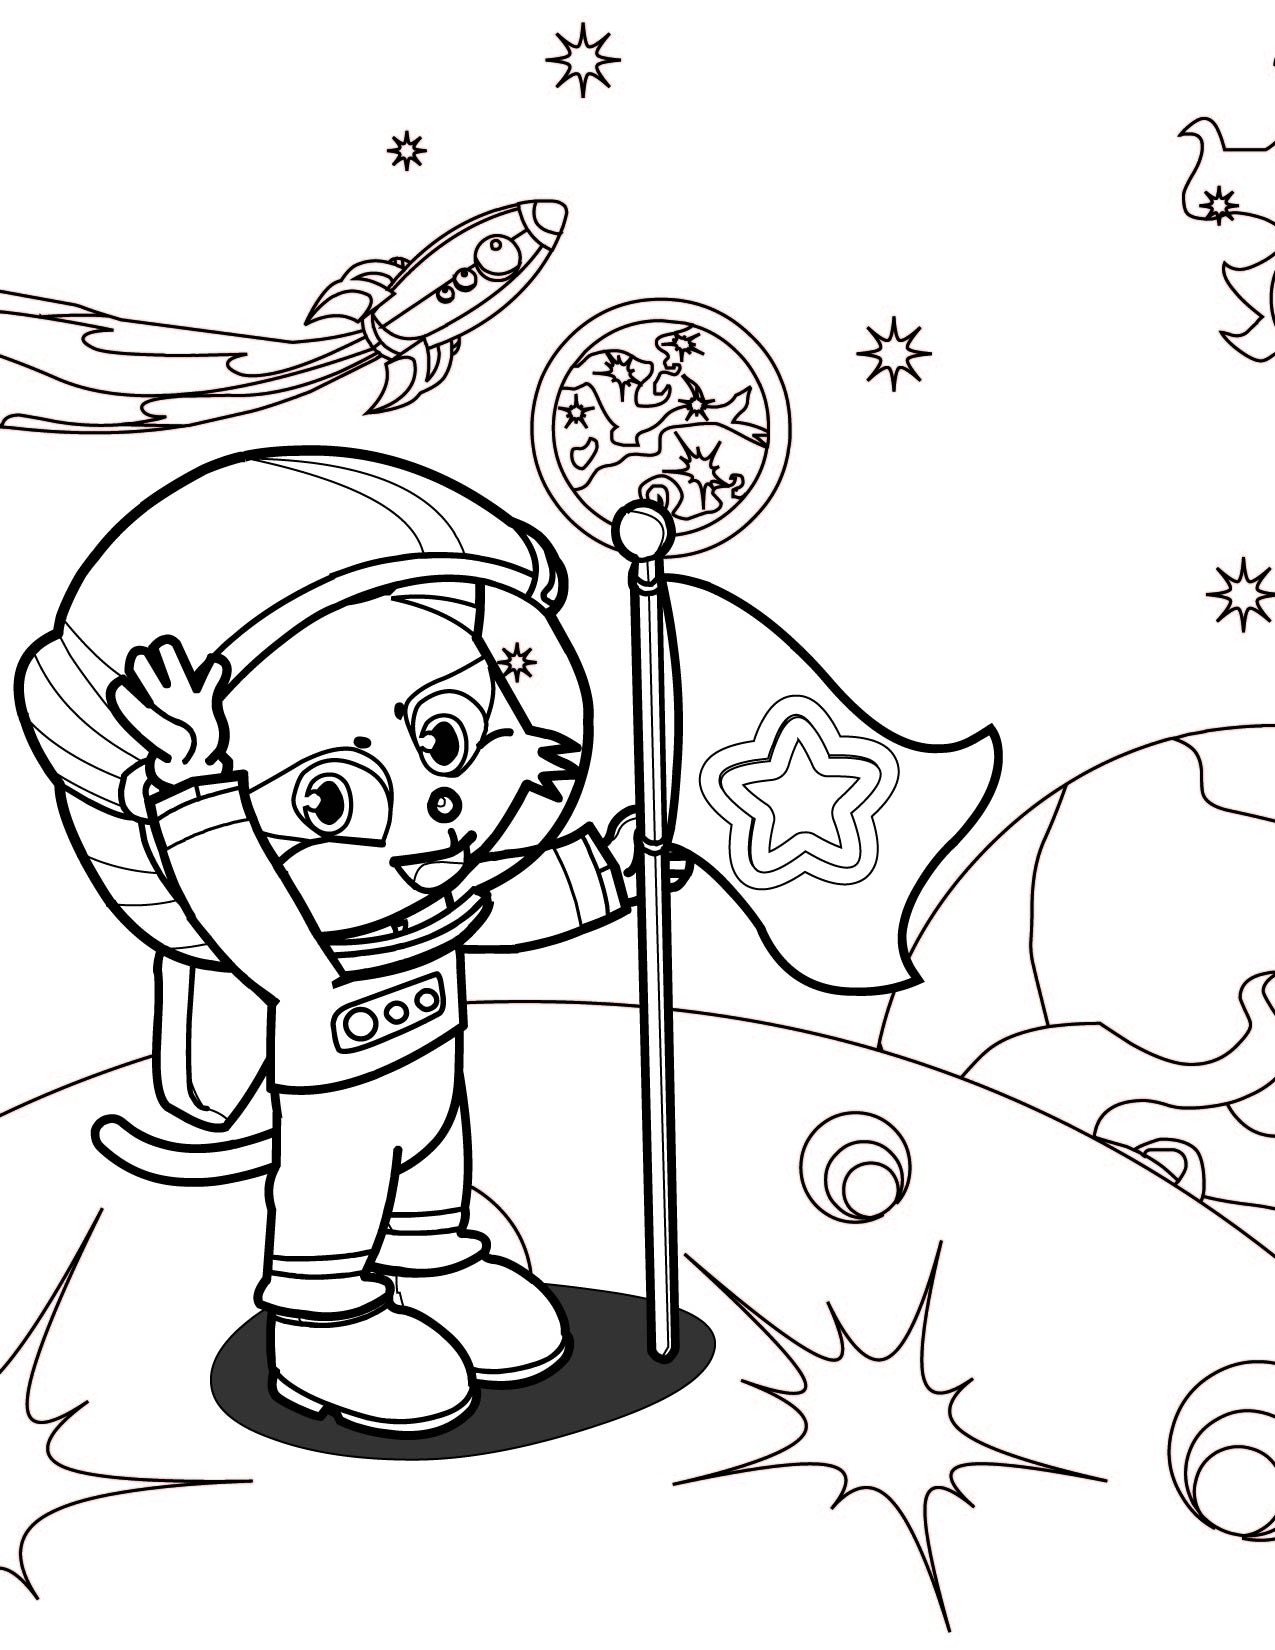 1275x1650 Astronaut Coloring Pages Luxury Astronaut Coloring Pages Cartoon